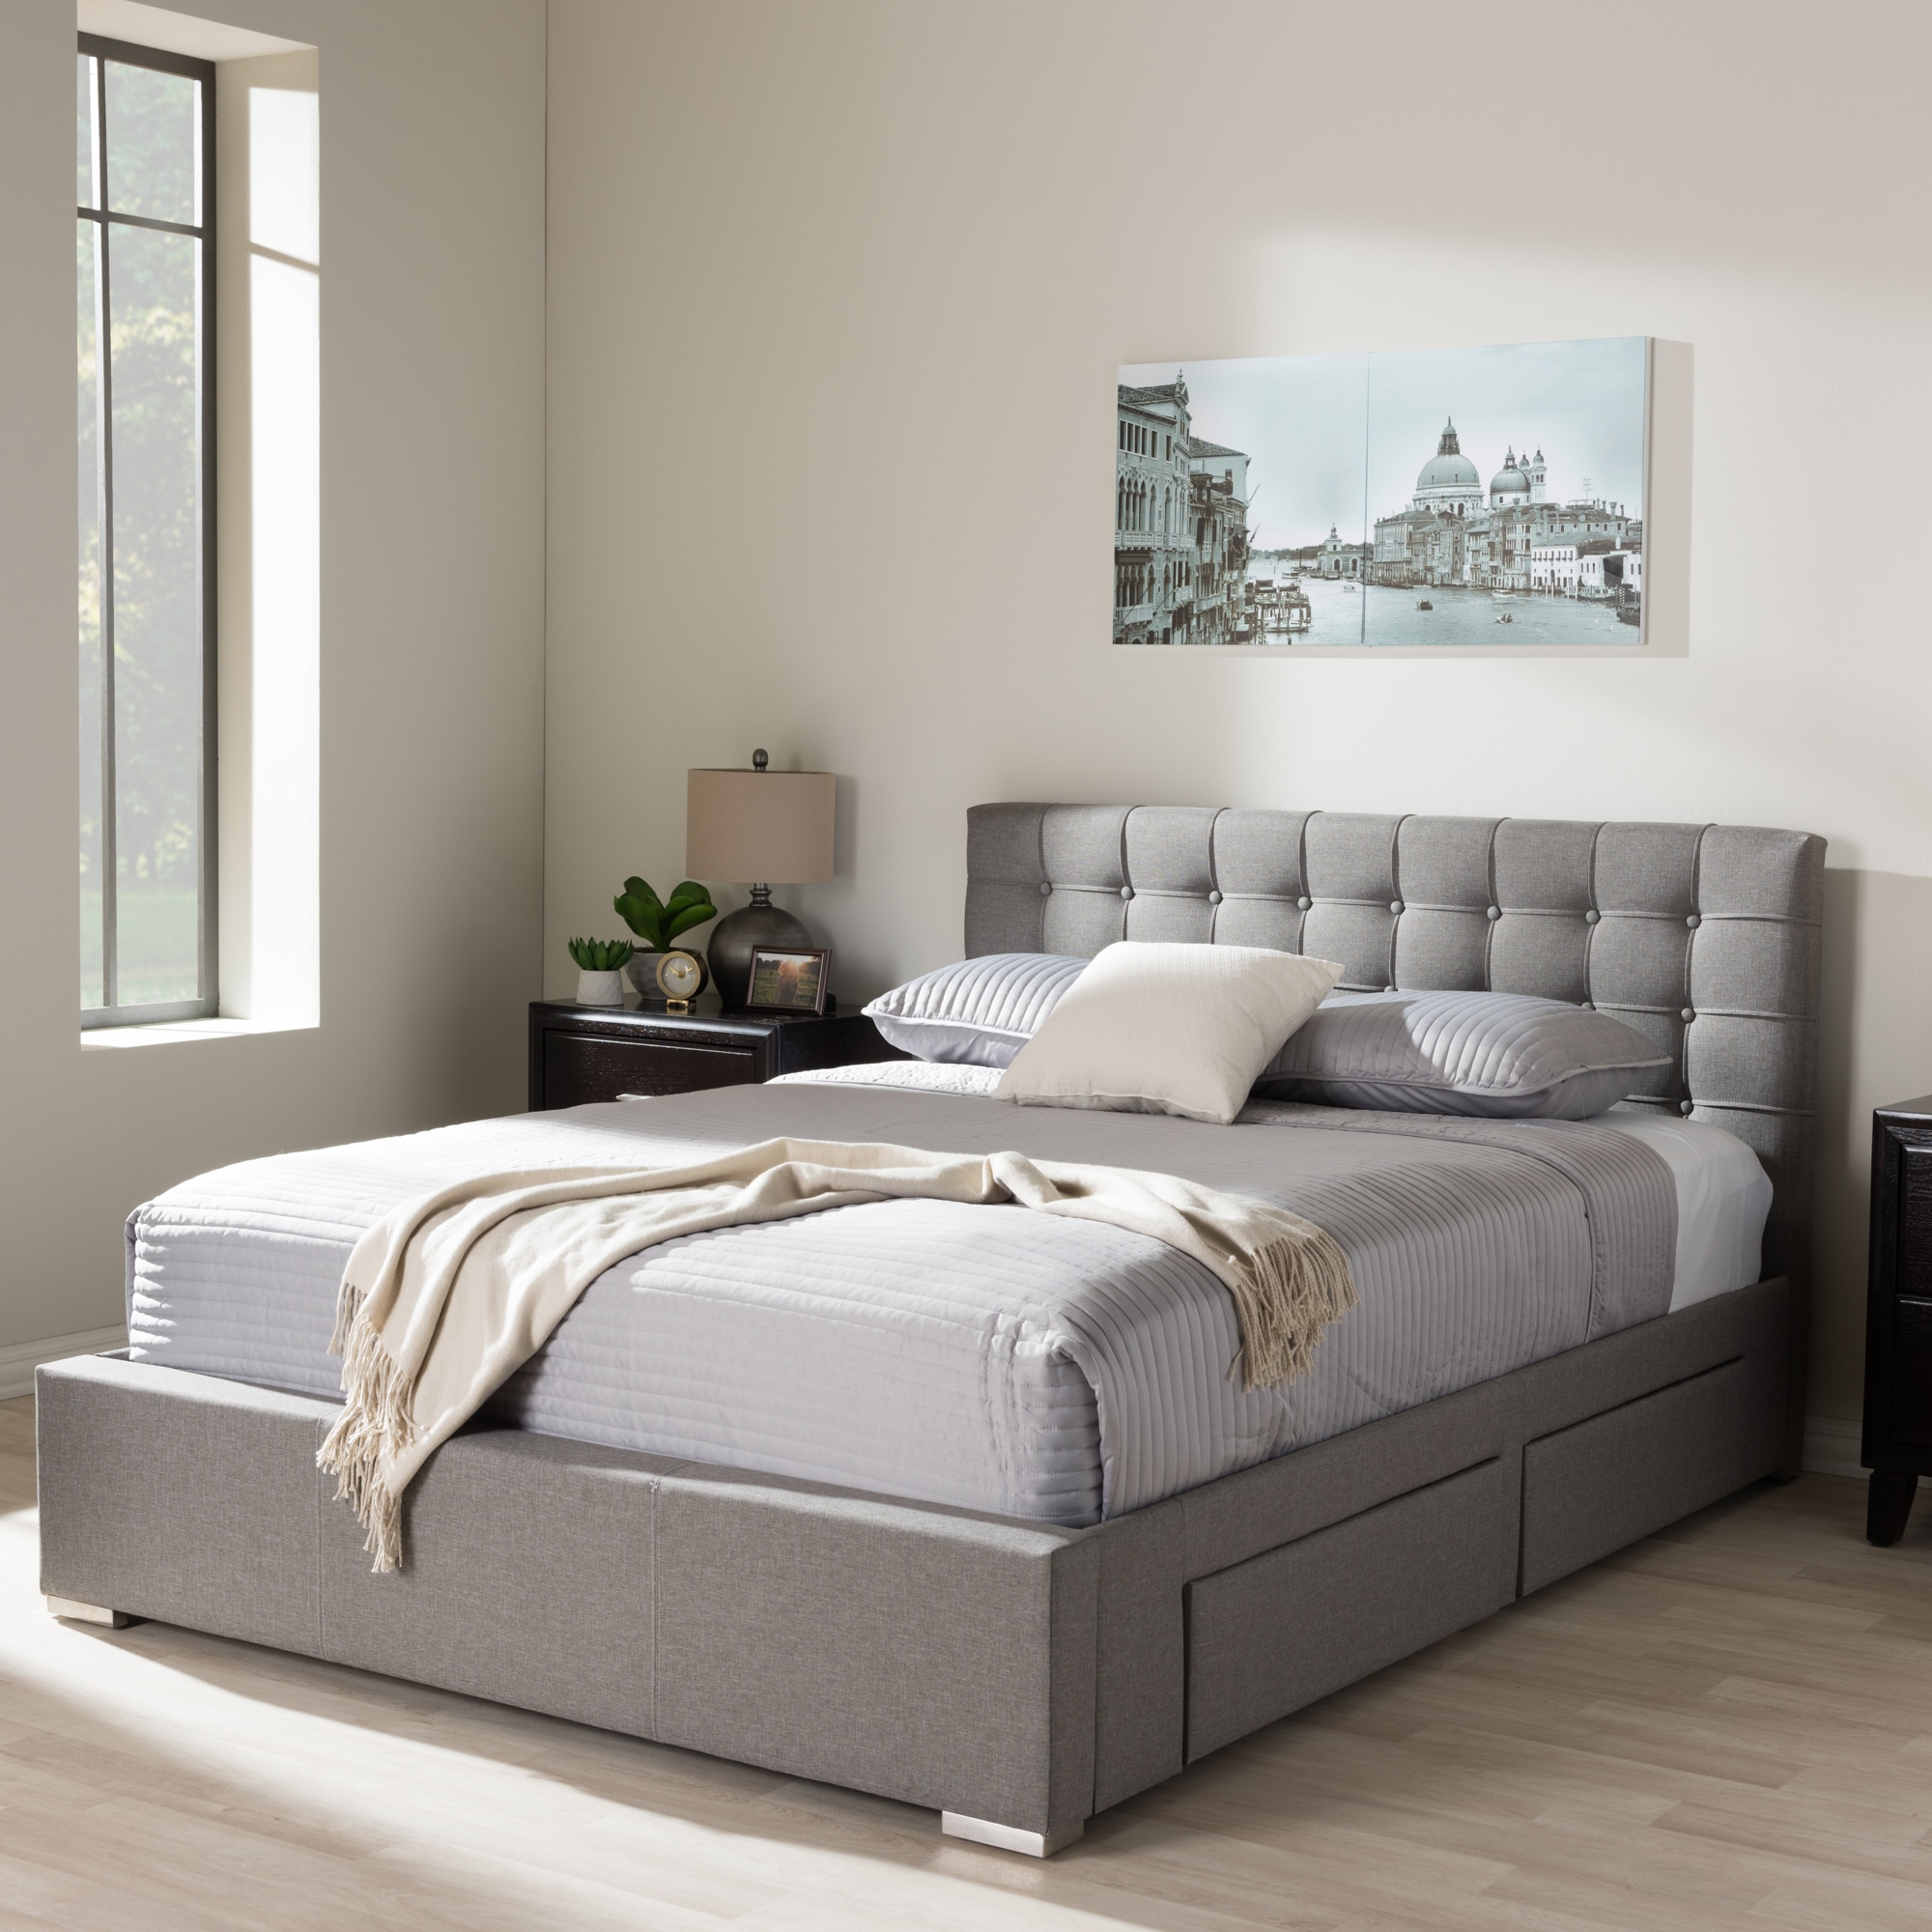 Baxton Studio Adonis Modern And Contemporary Grey Fabric 4 Drawer King Size Storage Platform Bed Overstock 20543701